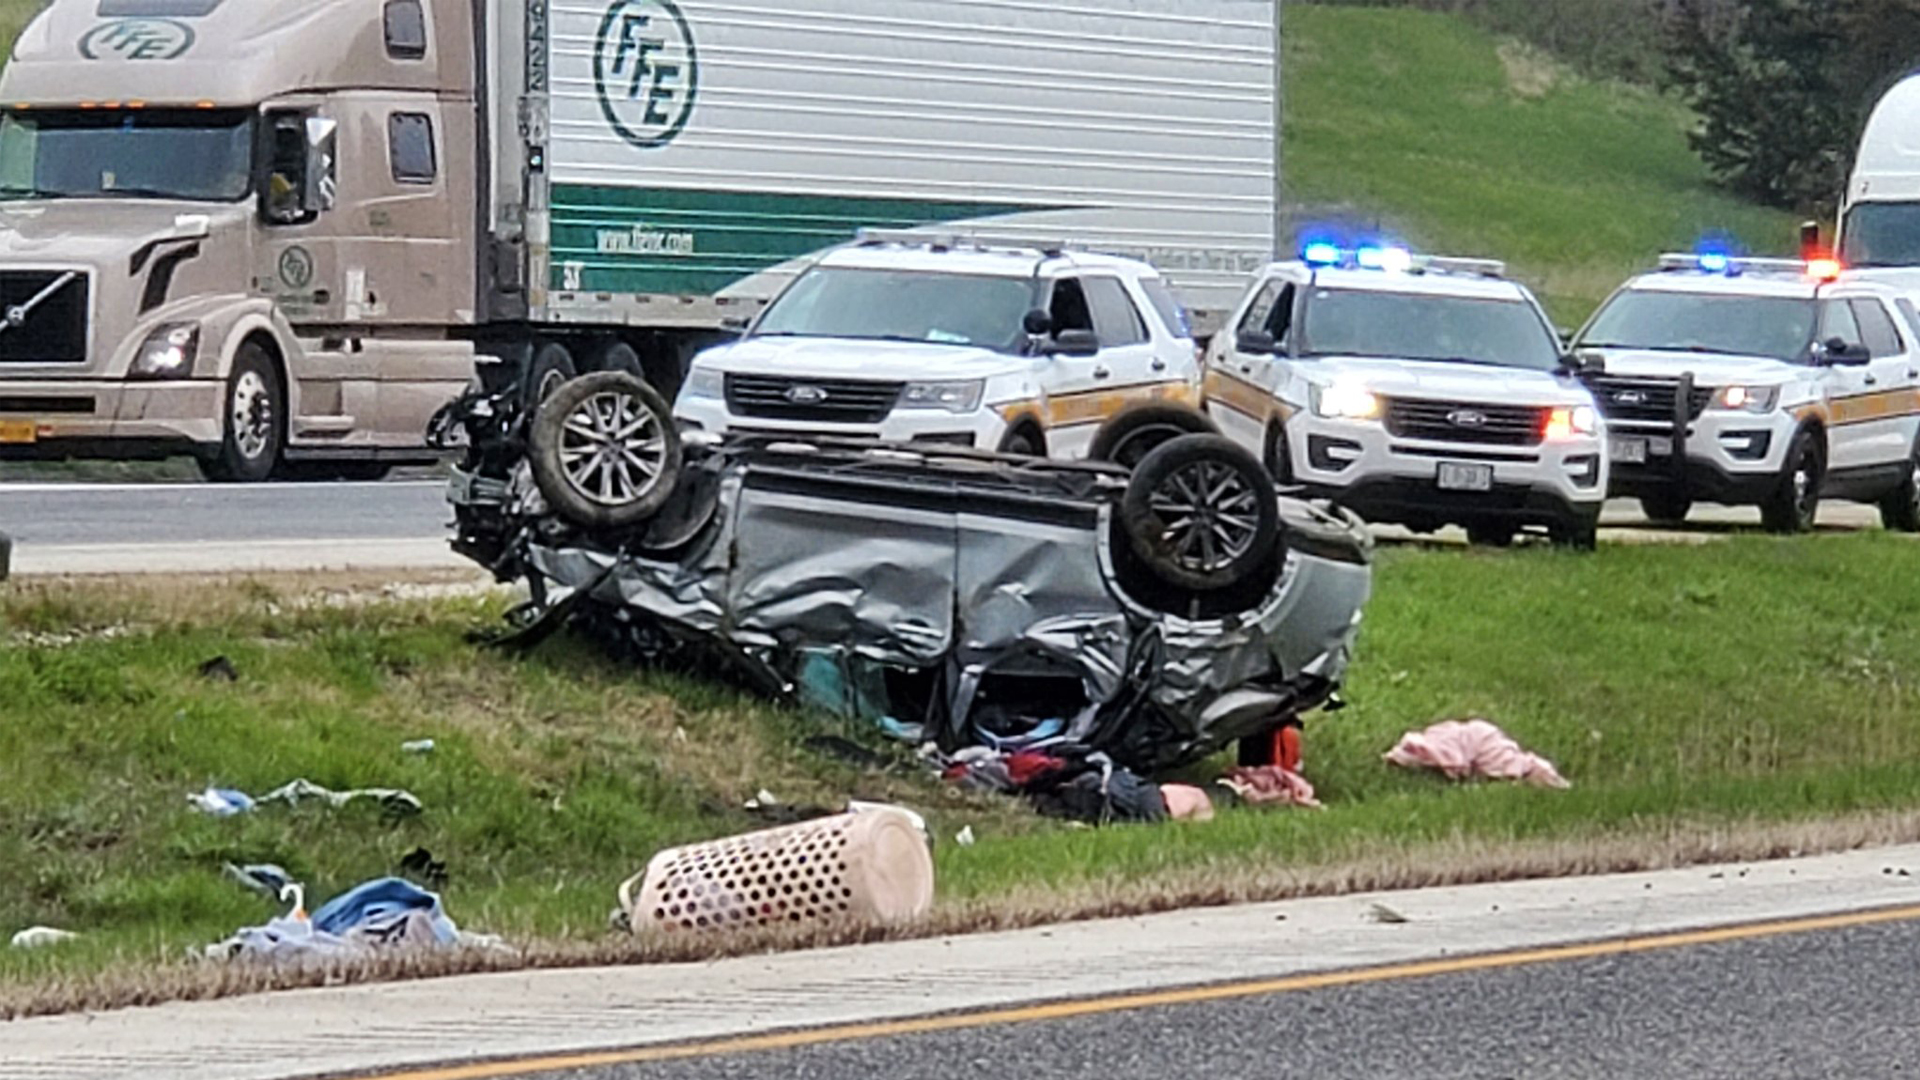 Emergency crews respond to a rollover accident on I-80 on April 24, 2020 (photo: Ryan Risky, OurQuadCities.com).